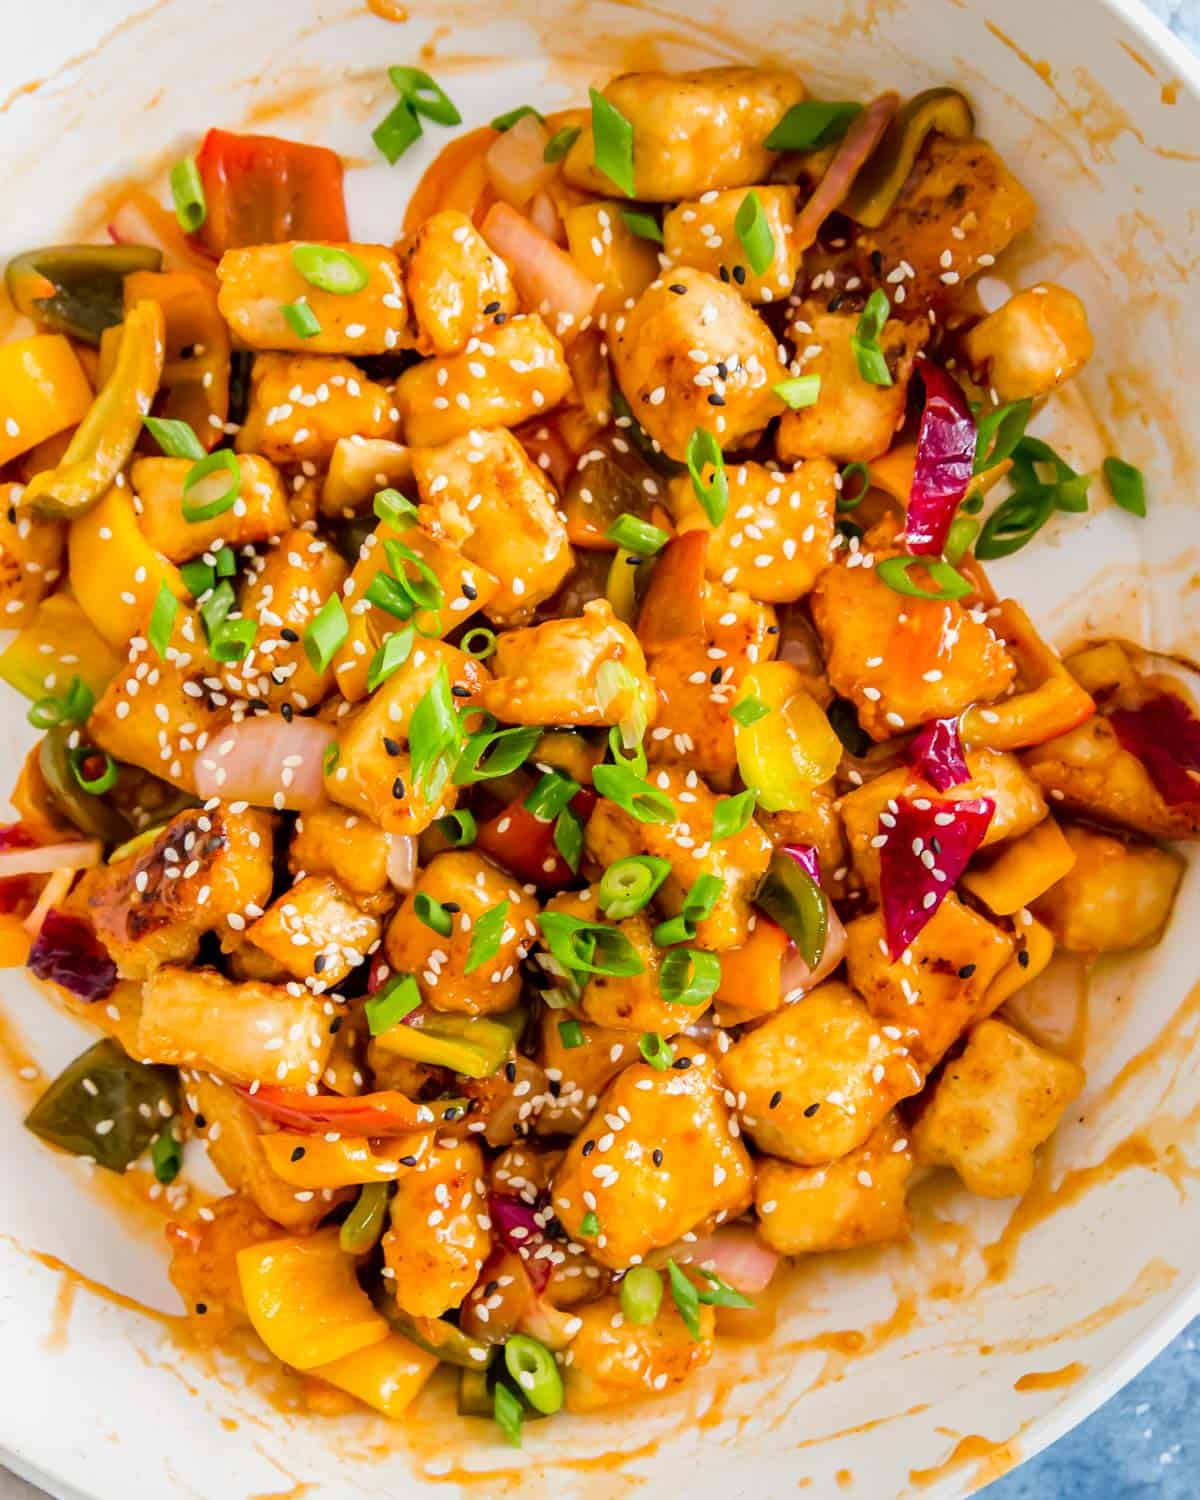 This easy sweet and sour tofu comes together in a skillet in just 20 minutes of active time.